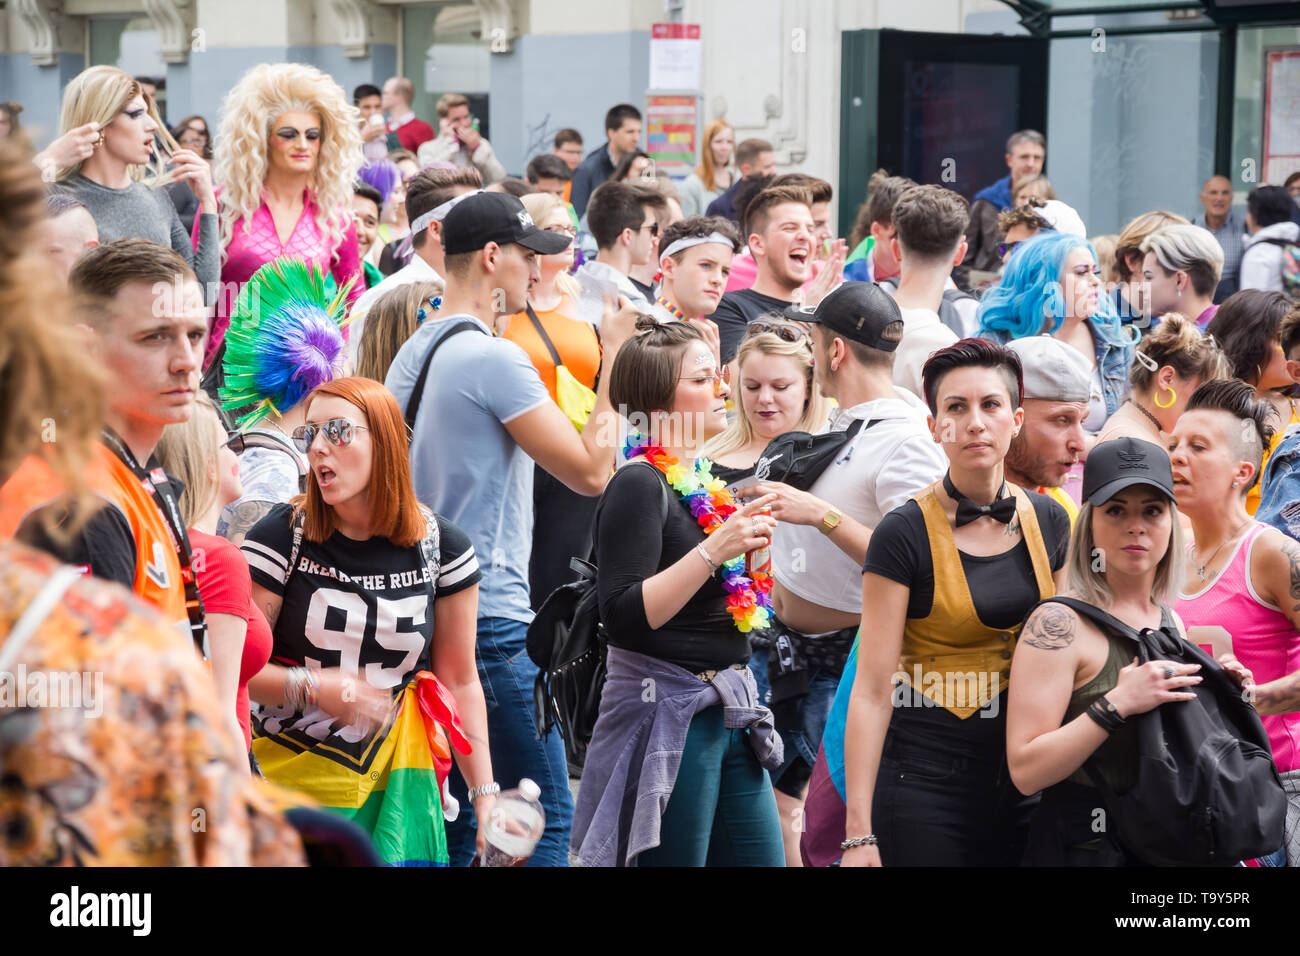 The Belgian Pride 2019 - gay Pride festival/LGBT event in Brussels - Stock Image